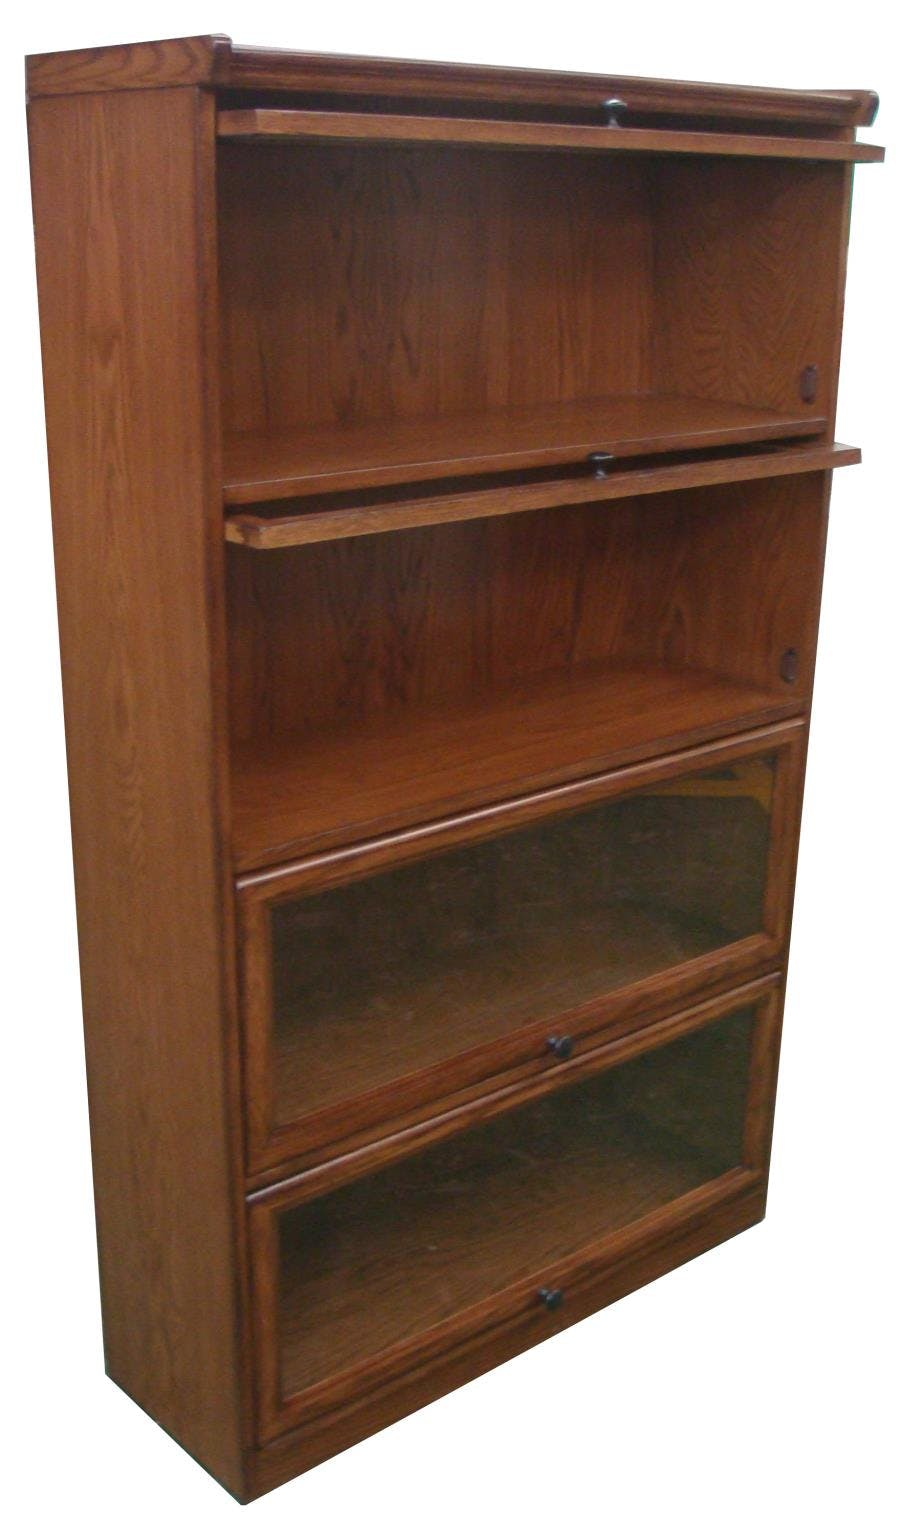 Tennessee Enterprises Home Office 4 Door Barrister Bookcase